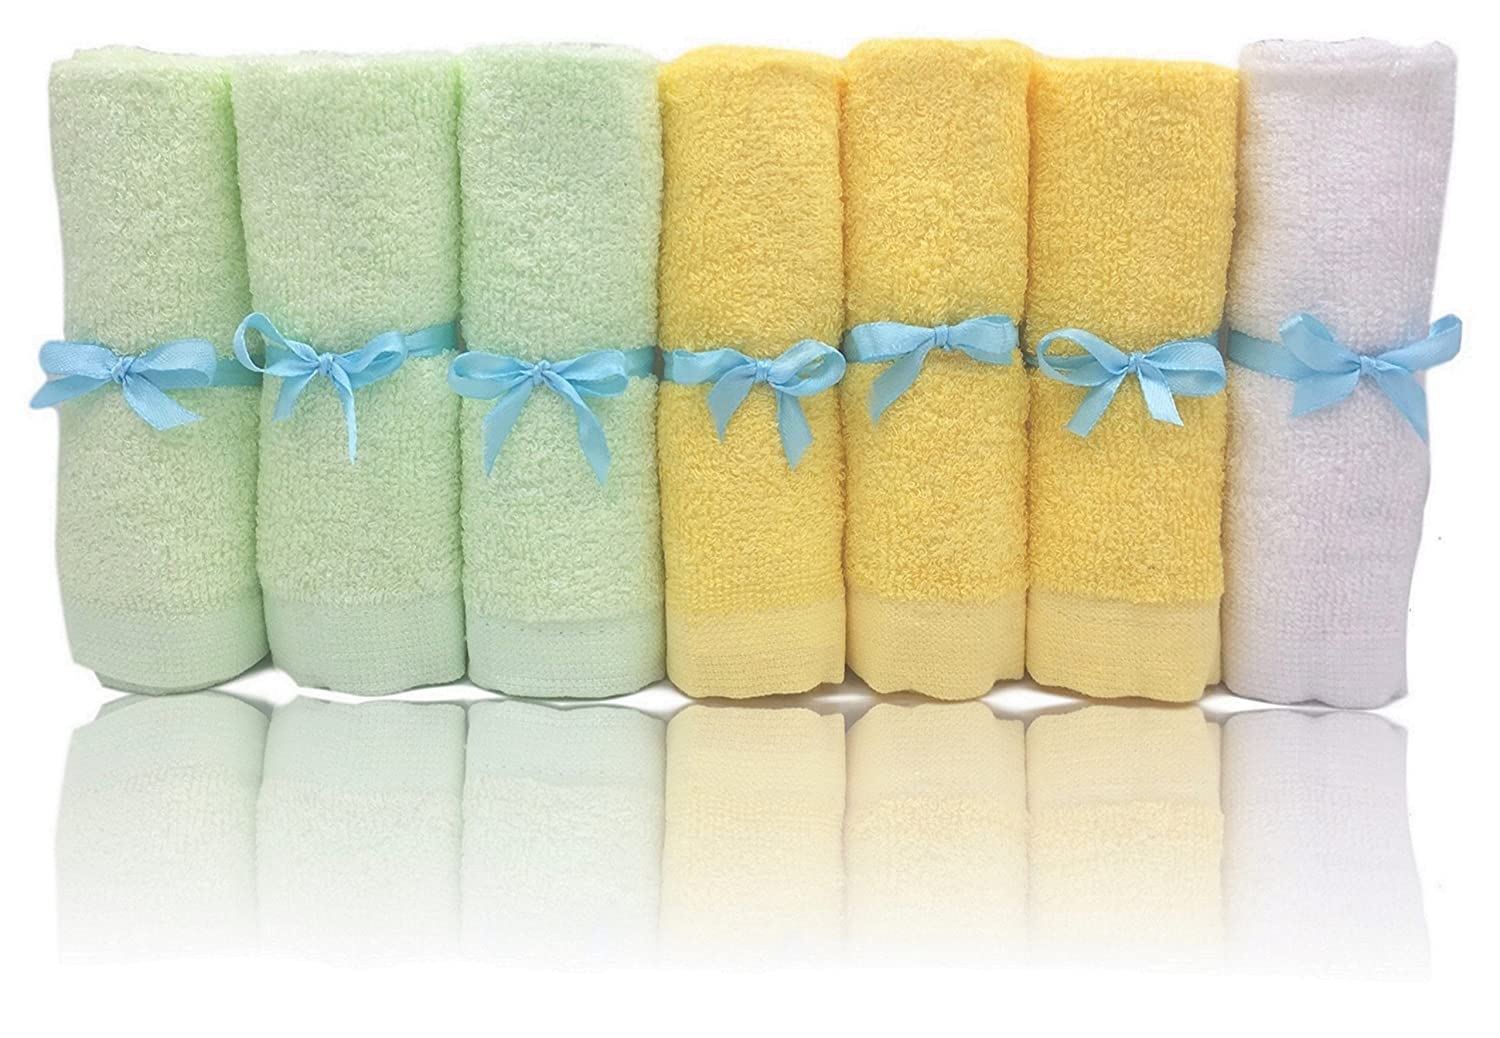 Bamboo Baby Washcloths Soft Organic 7 Pack Perfect for Baby Bathing Skin Care Josh and Jill Baby Shoppe